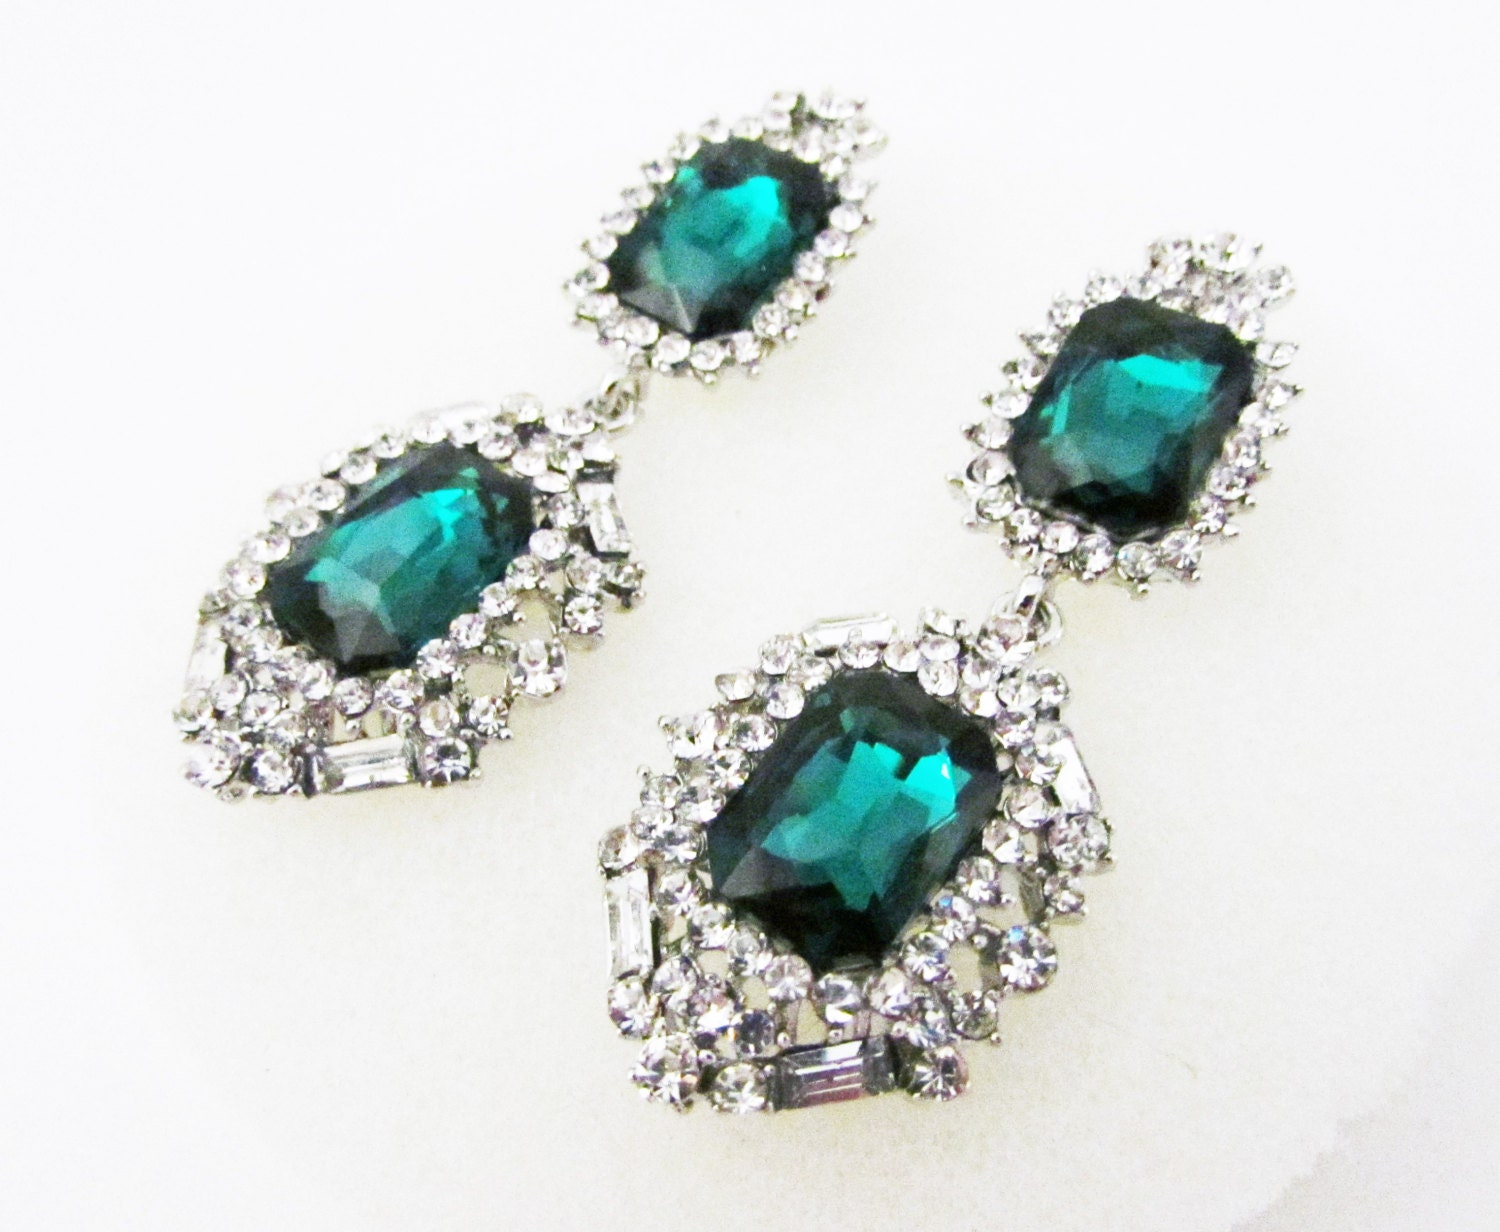 Vintage Style Emerald Green Rhinestone and Crystal Earrings Green Crystal Earrings Emerald Green Earrings Silver and Green Earrings